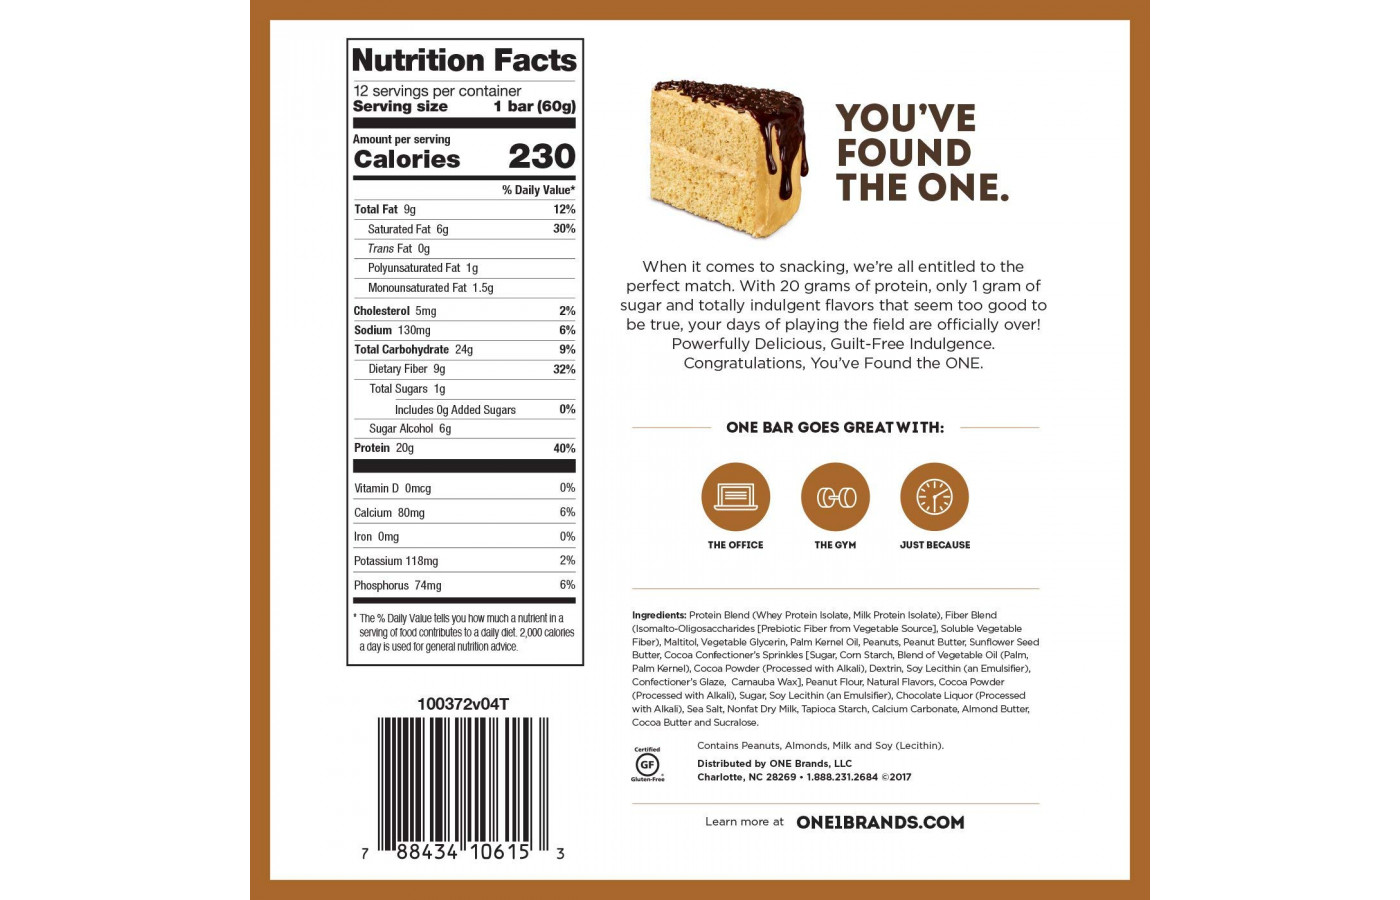 One Nutrition Facts